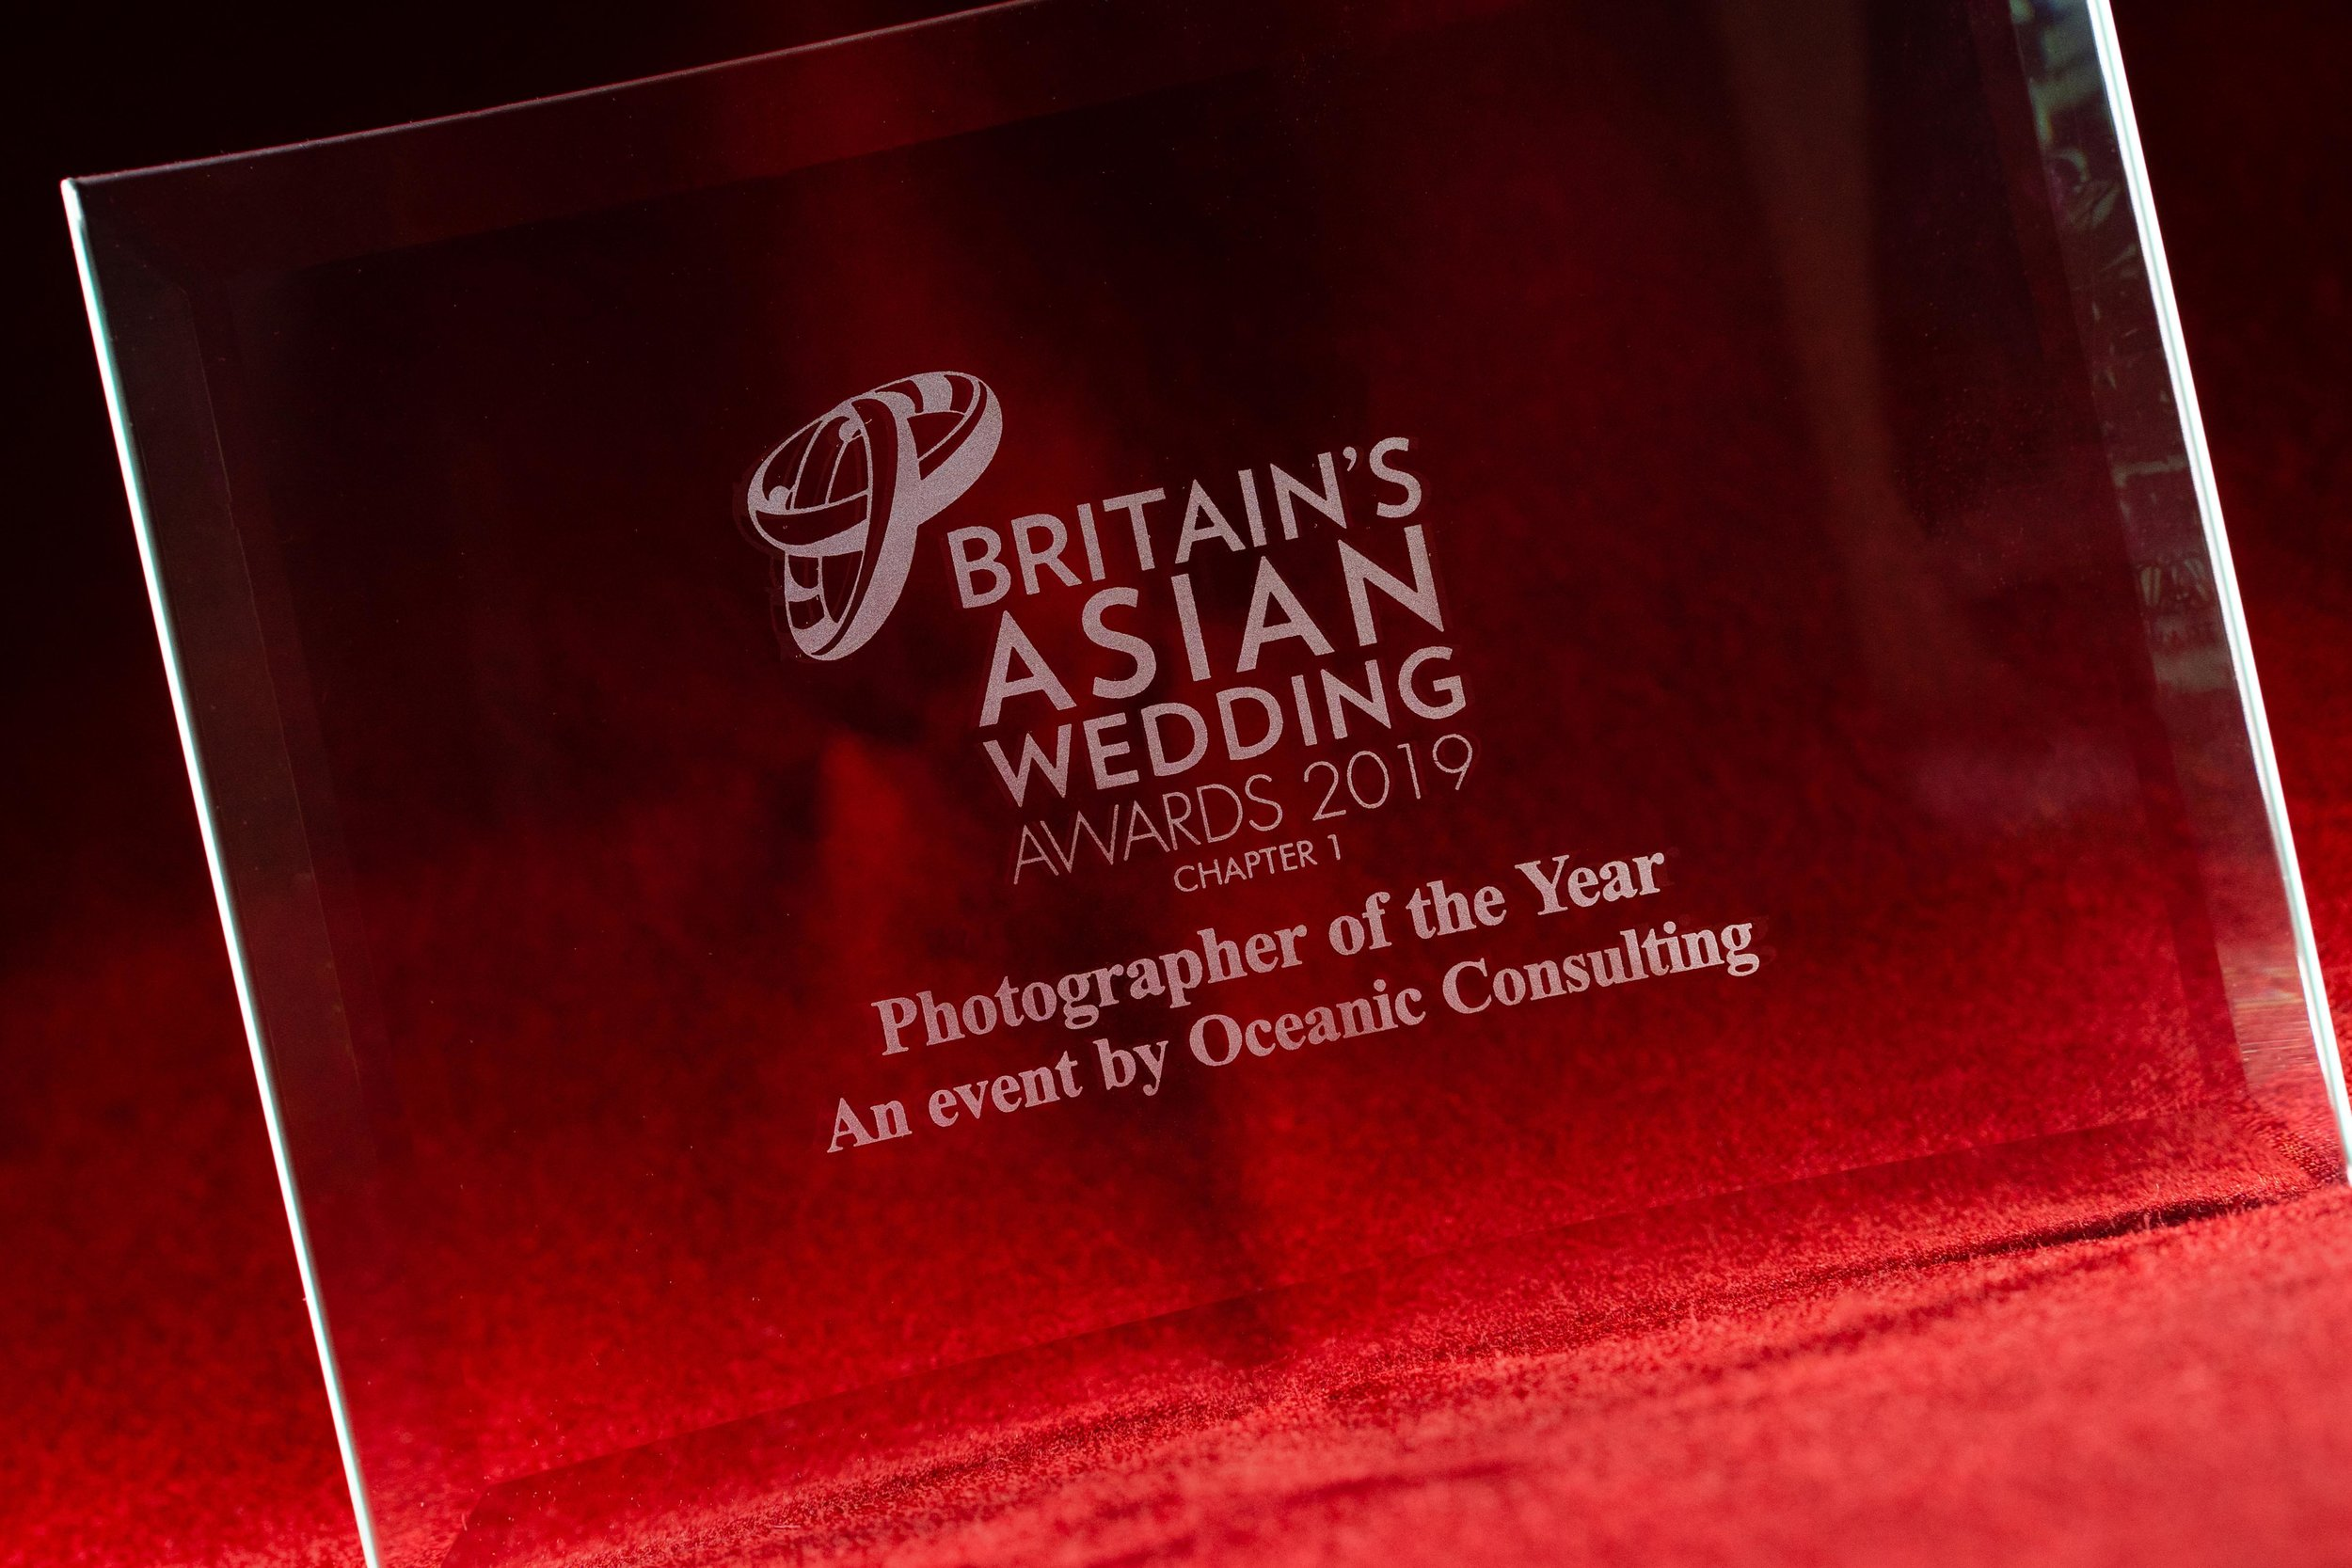 Photos by Abhi wins photographer of the year 2019 at Britains Asian Wedding Awards